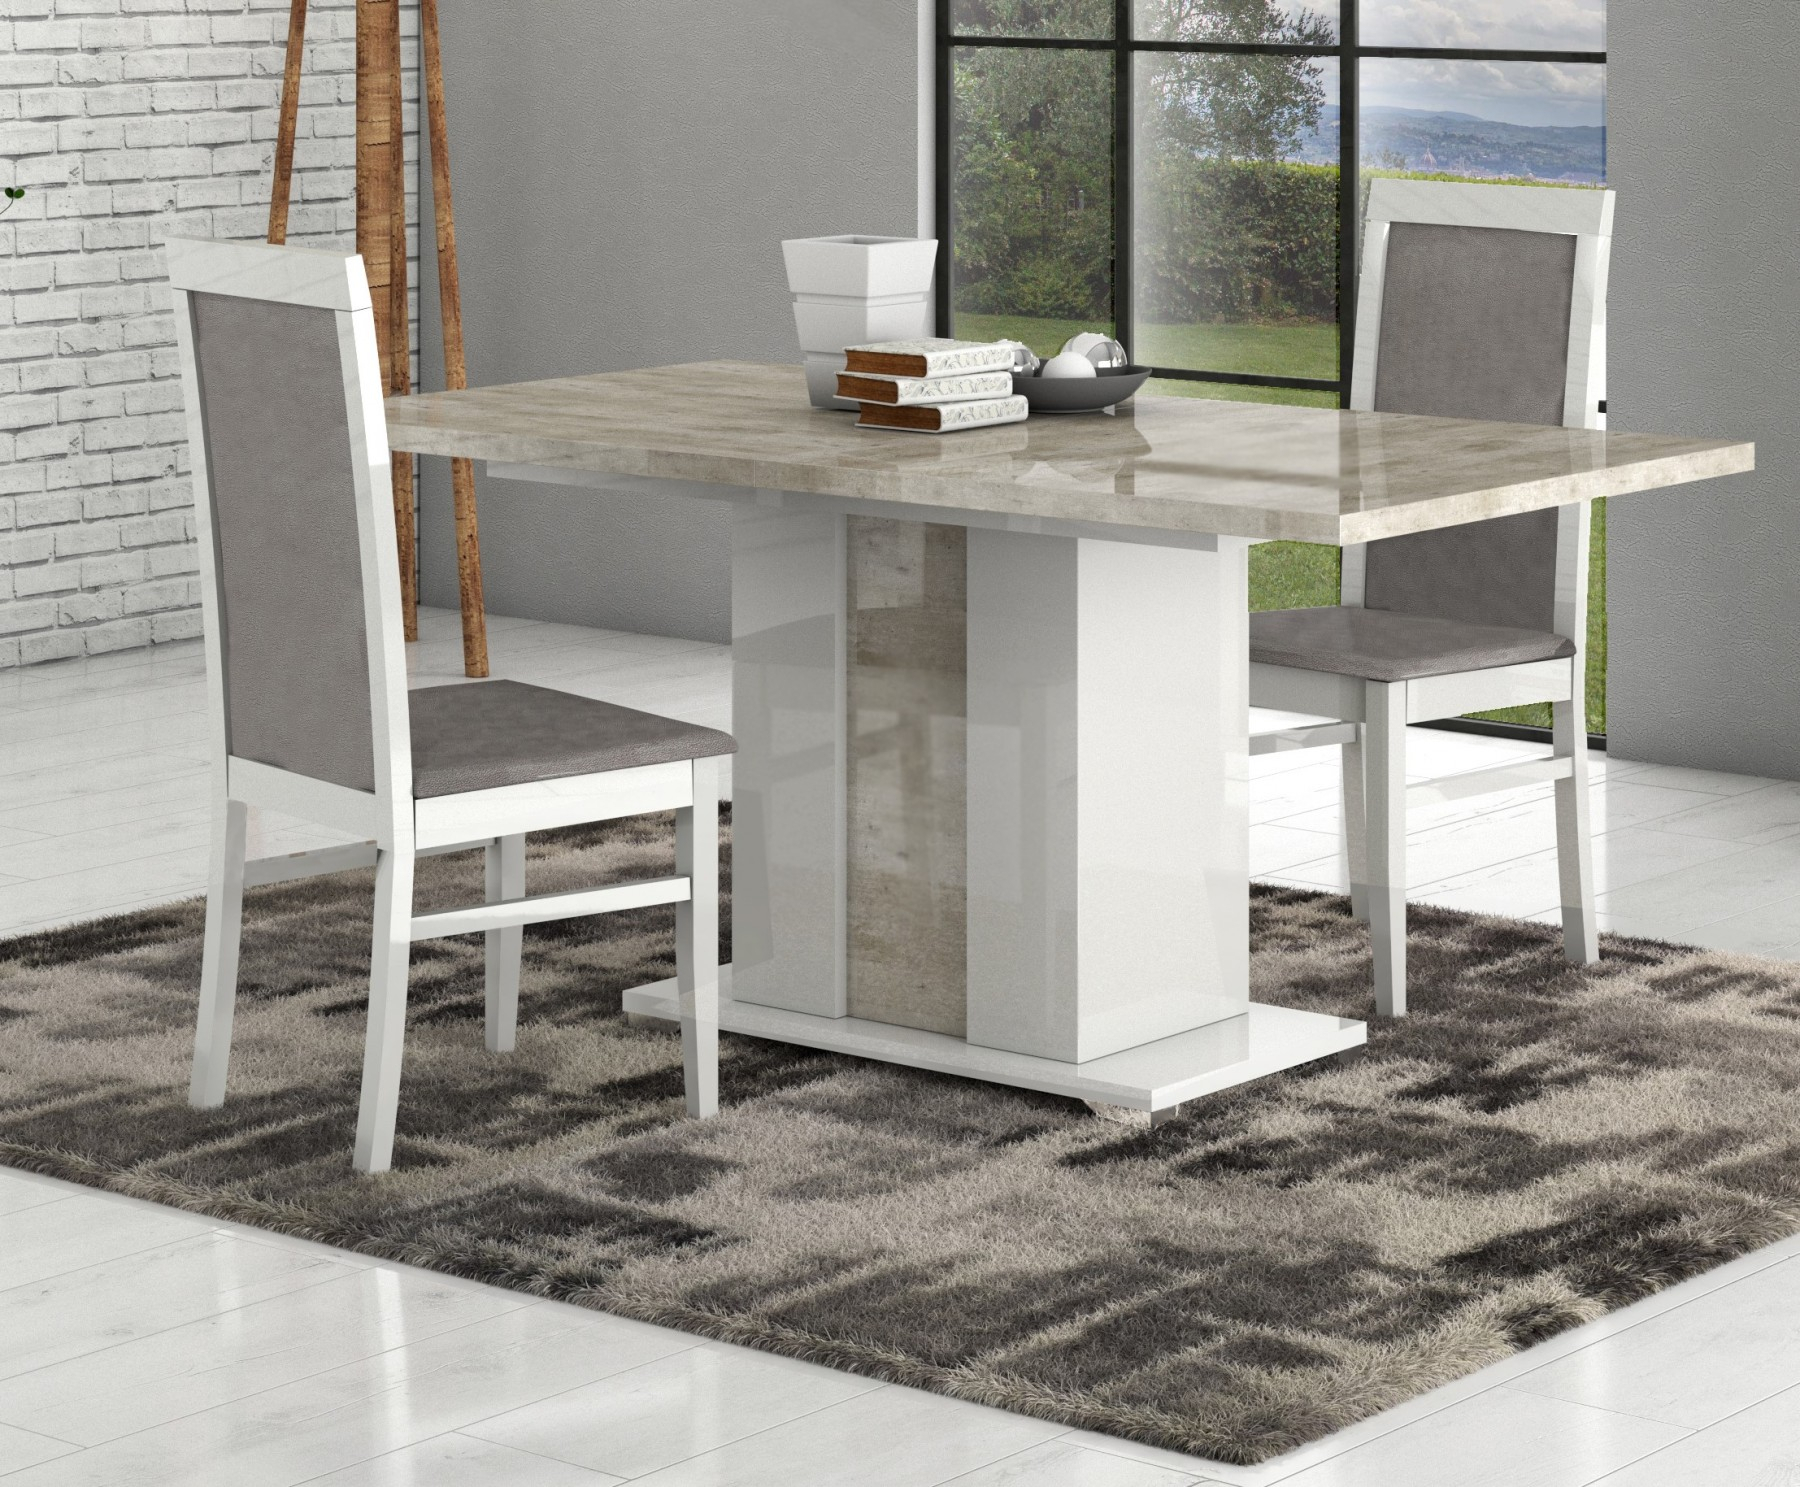 San Martino Palladio Rectangular Wooden Table With Extension Pertaining To Recent Martino Dining Tables (View 5 of 25)